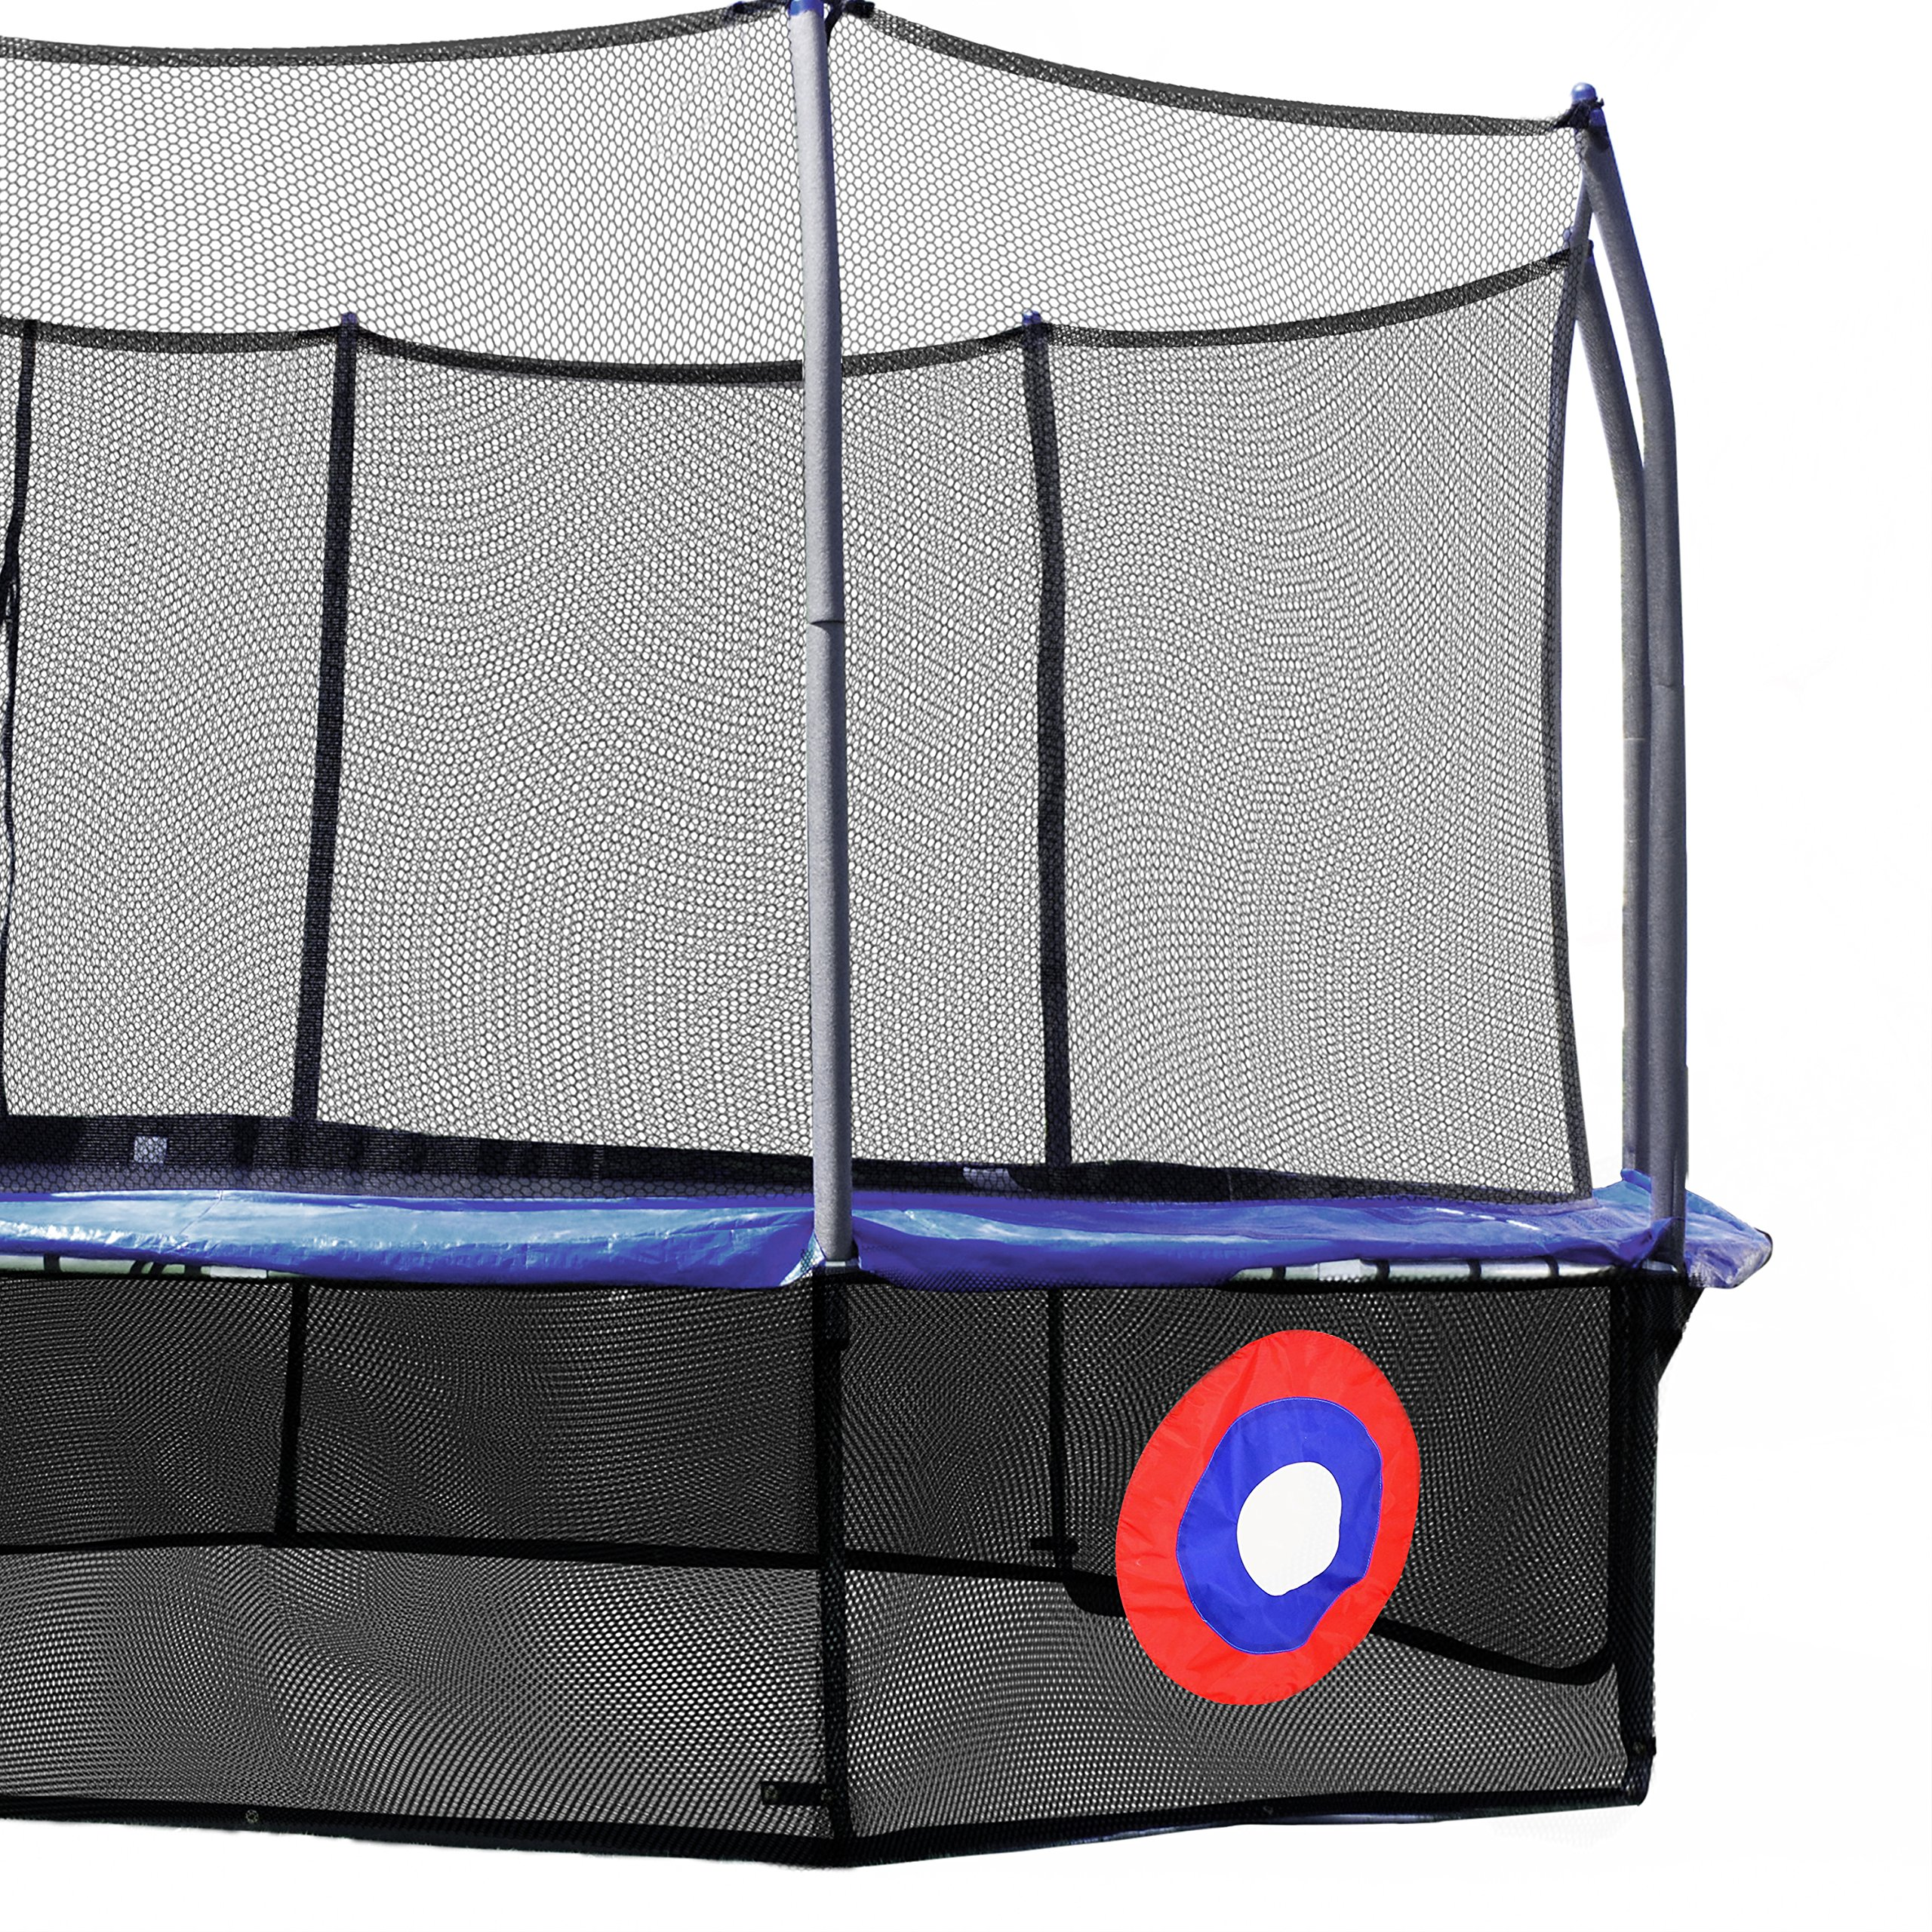 Skywalker Trampolines Sure Shot Lower Enclosure Net by Skywalker